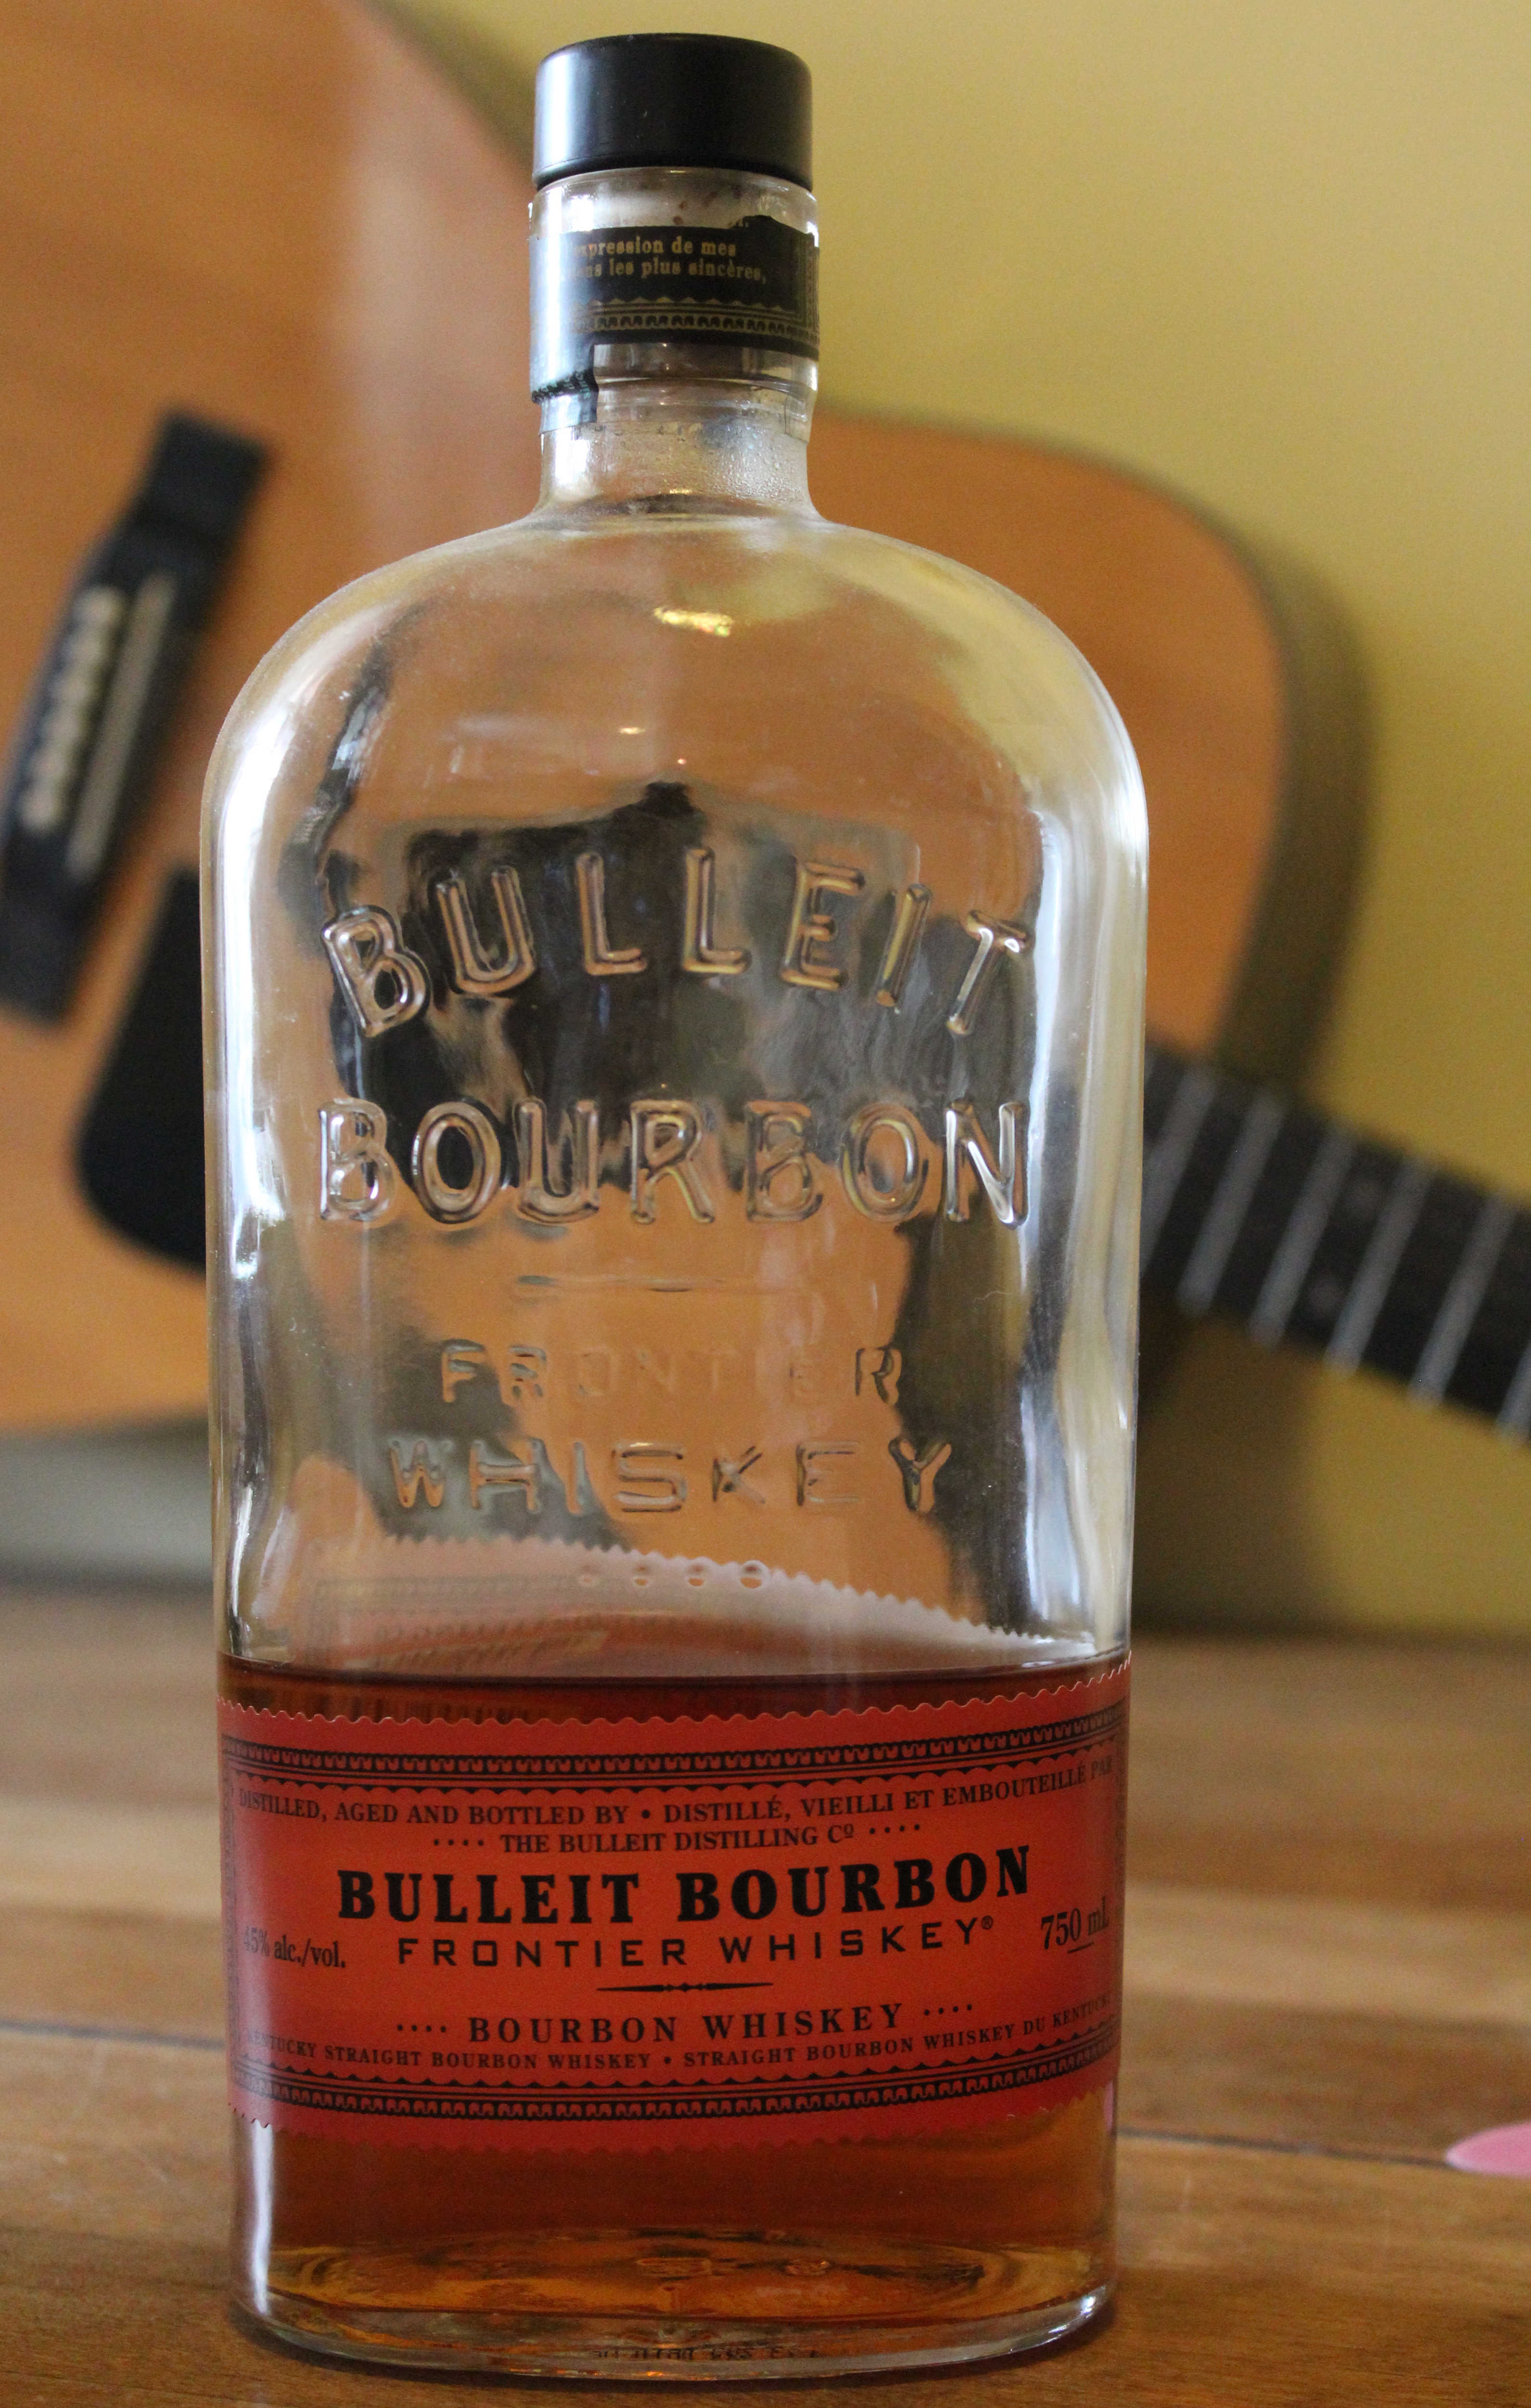 Bulleit Bourbon Frontier Whiskey with Dan